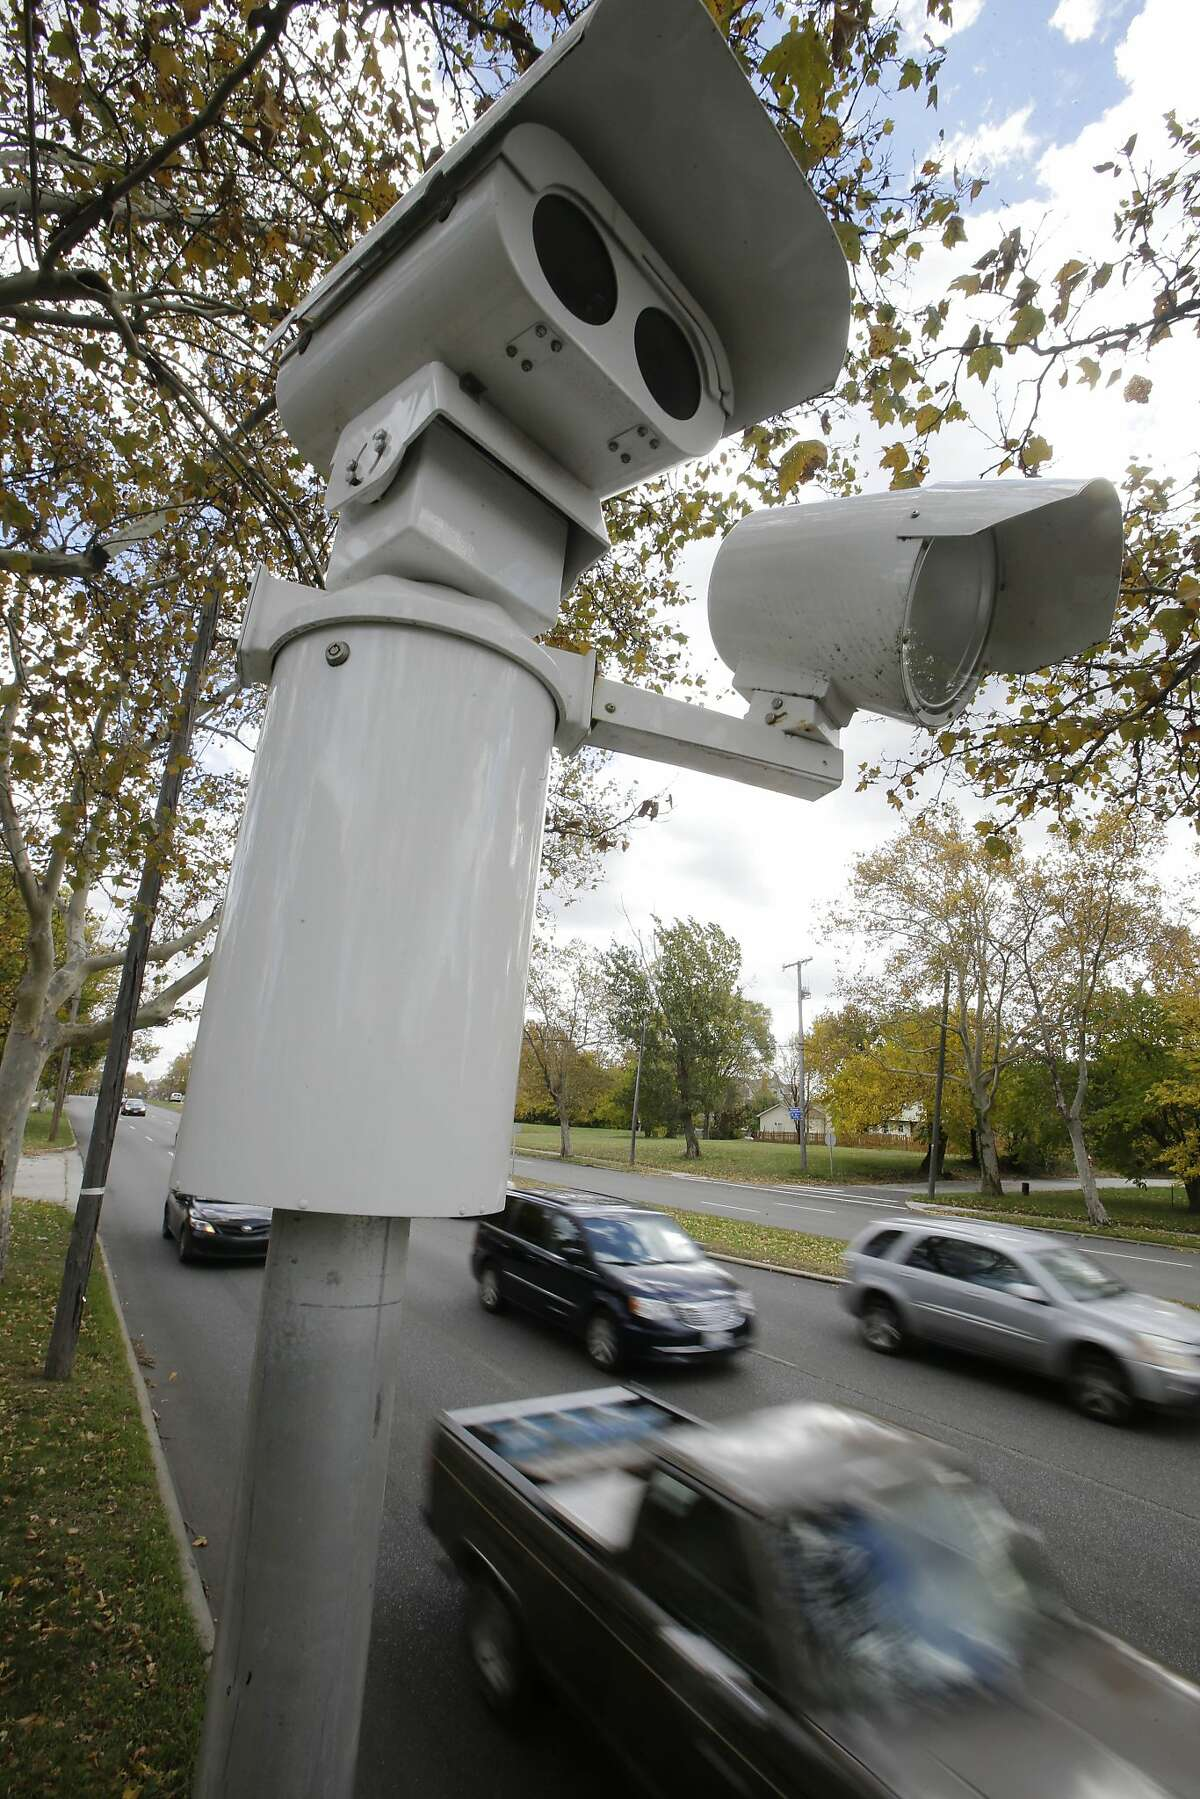 Motorists pass an automated traffic camera on Wednesday, Oct. 29, 2014, in Cleveland.